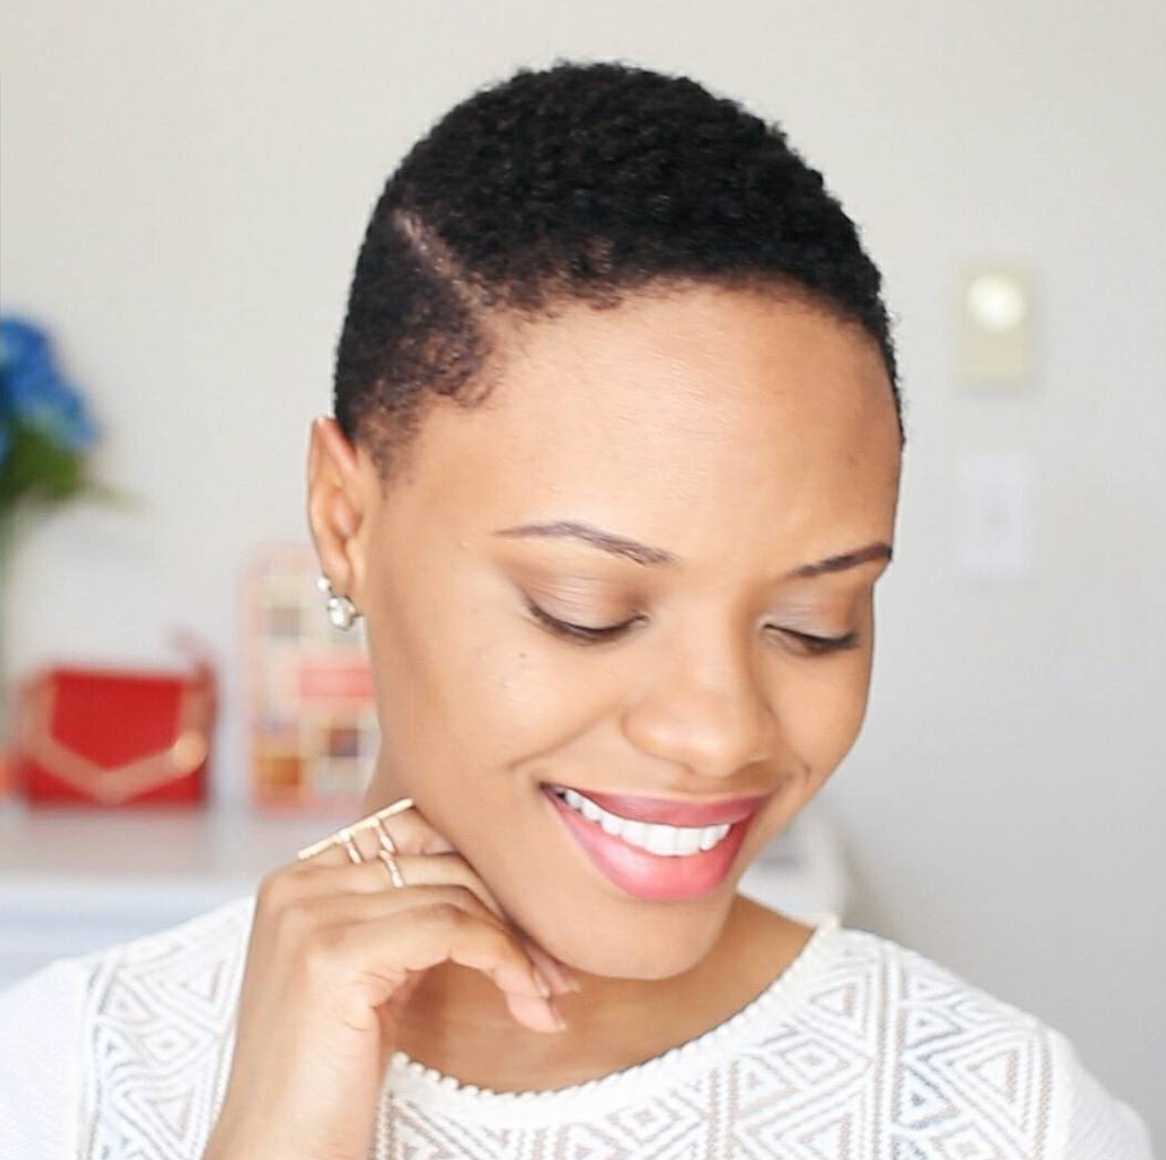 30 Perfect Pixie Haircuts For Chic Short Haired Women Pertaining To Most Popular Choppy Bowl Cut Pixie Hairstyles (View 9 of 20)